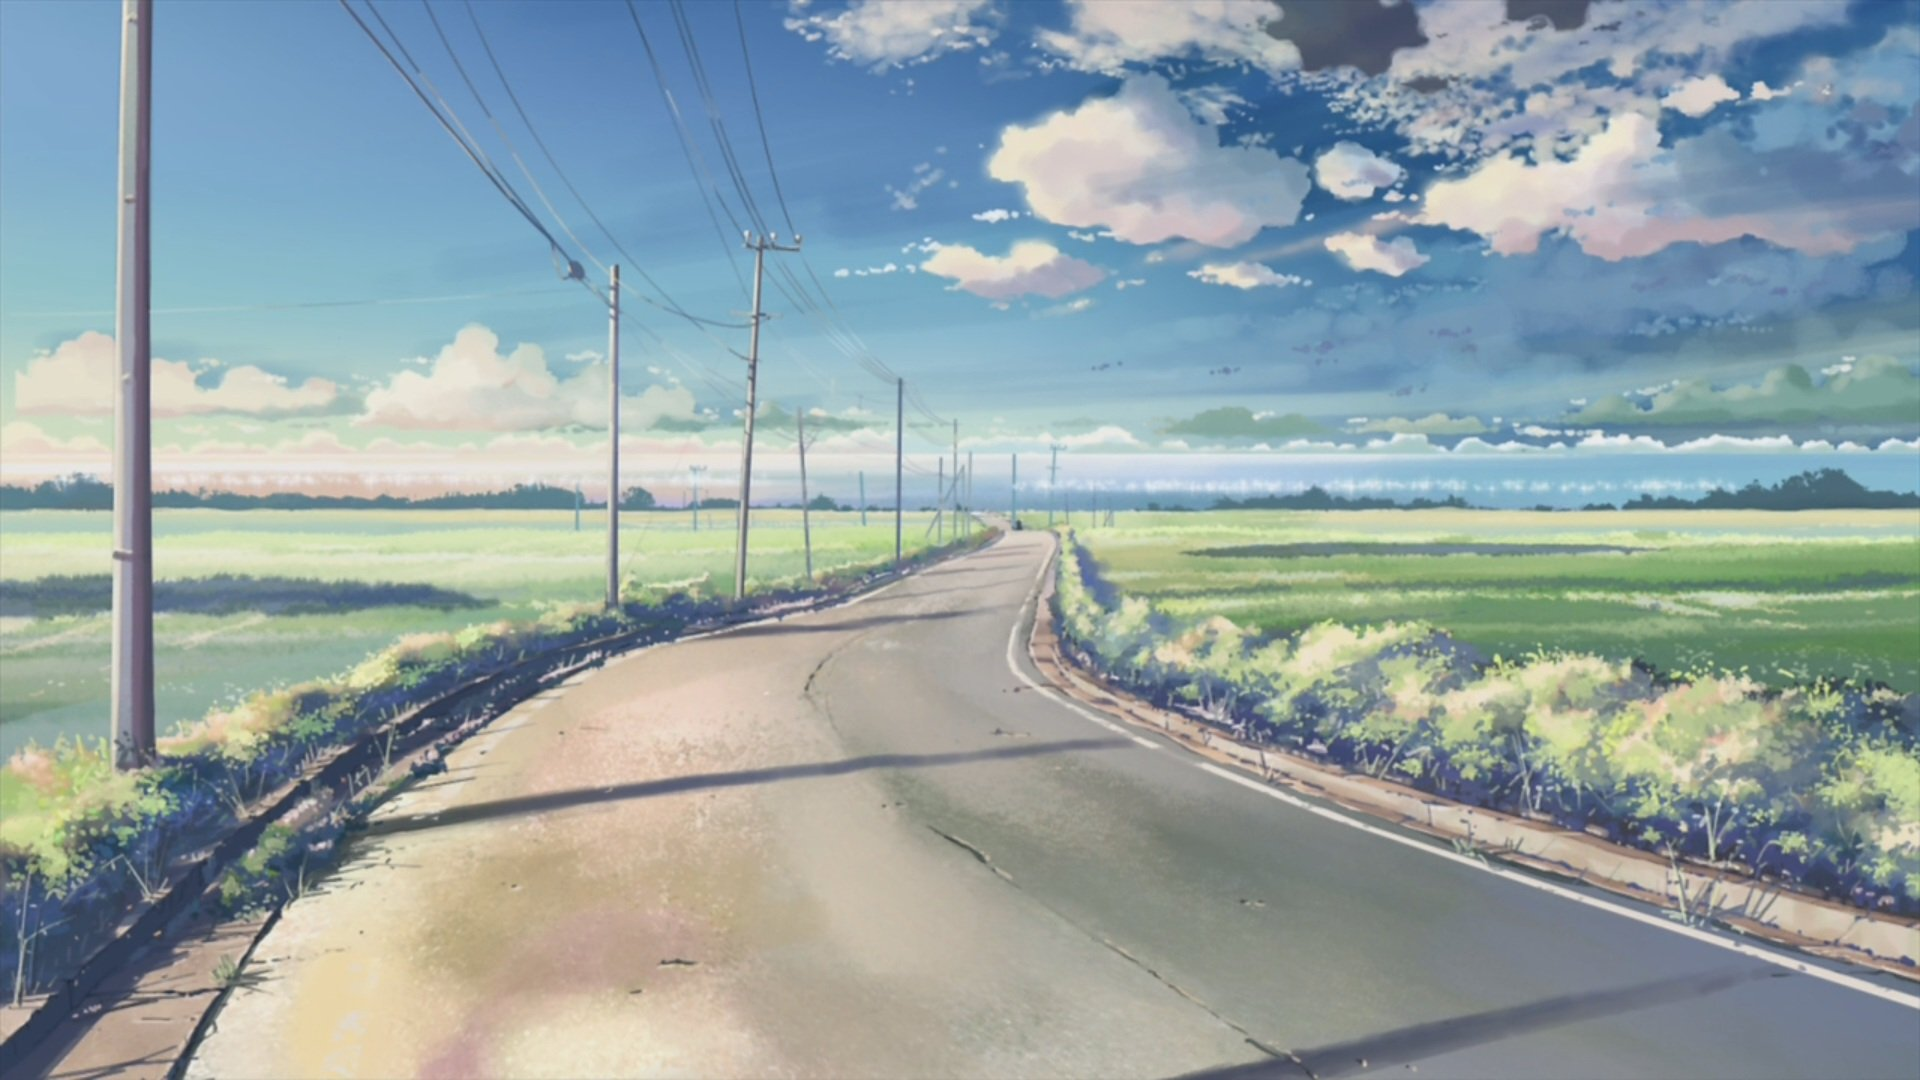 61 Cool Anime Landscape Wallpapers On Wallpapersafari